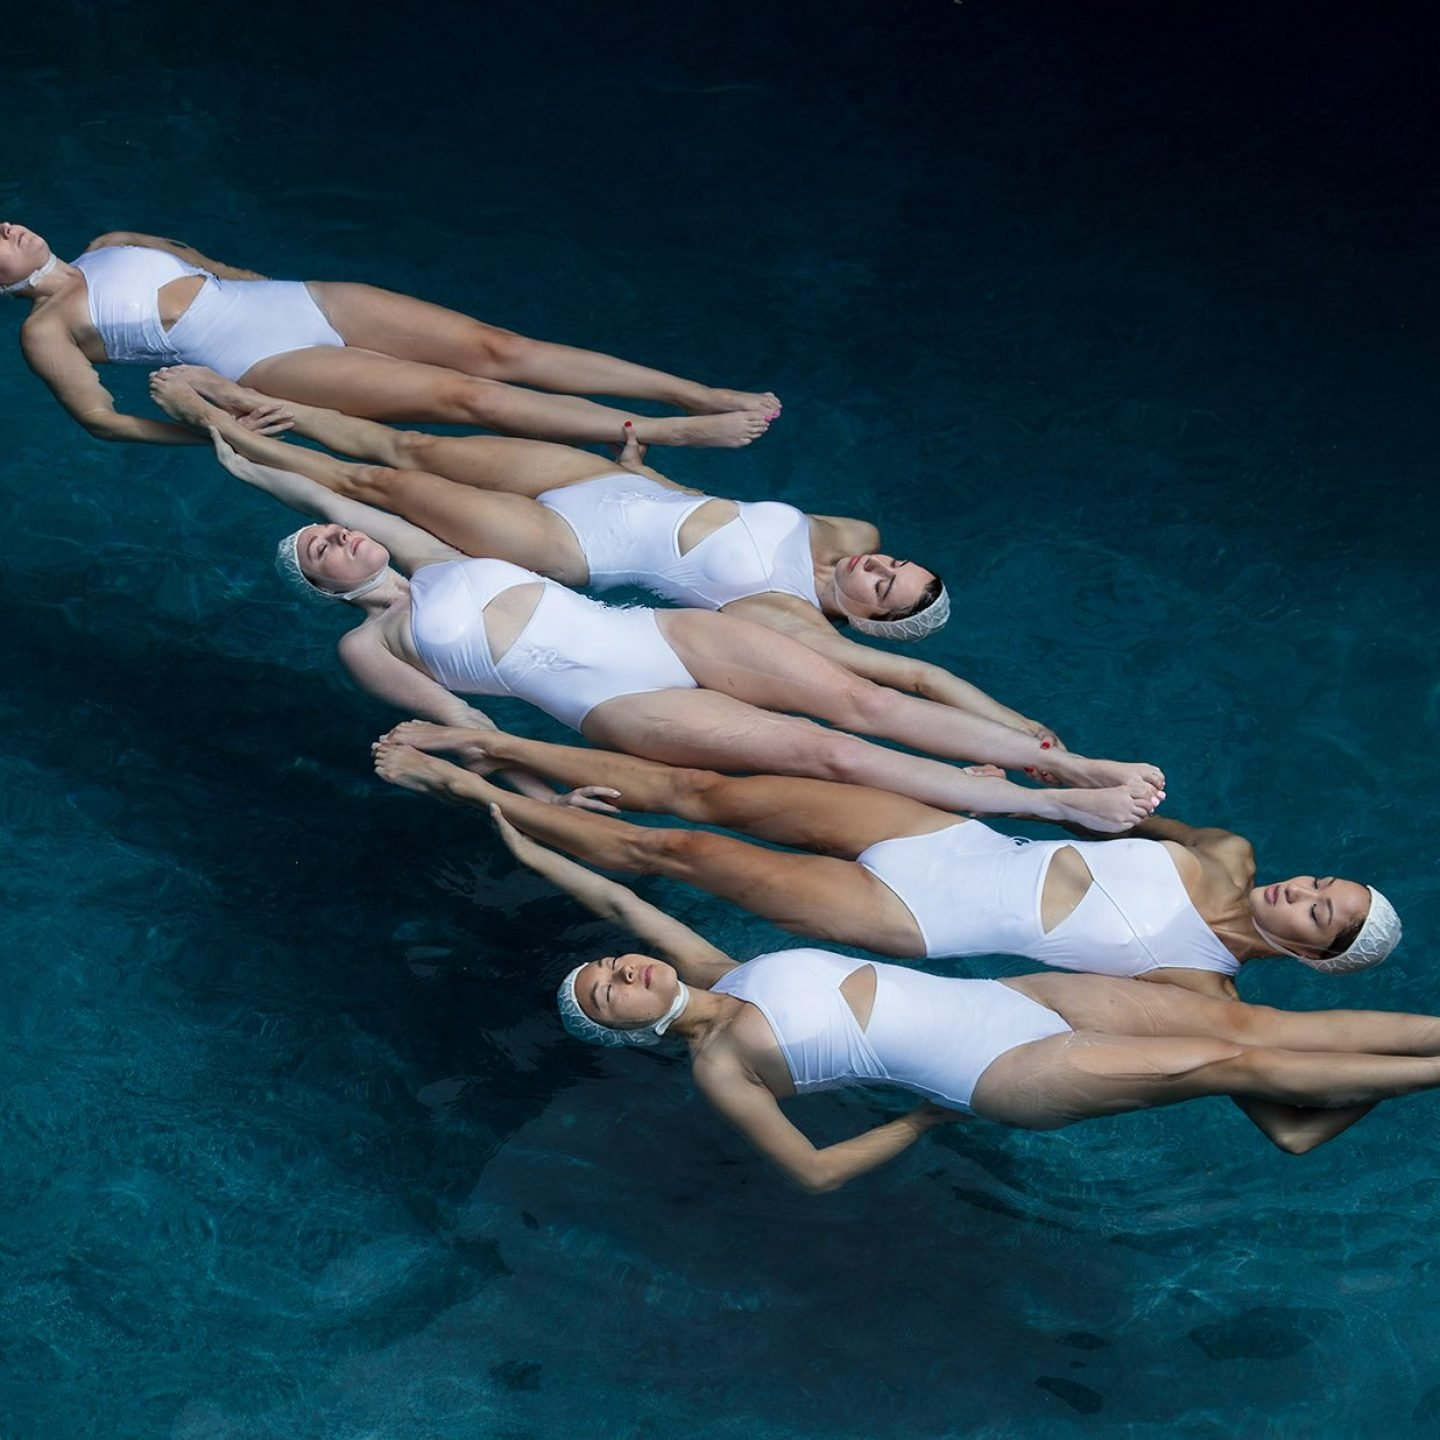 iGNANT_Photography_Emma_Hartvig_The_Swimmers_h